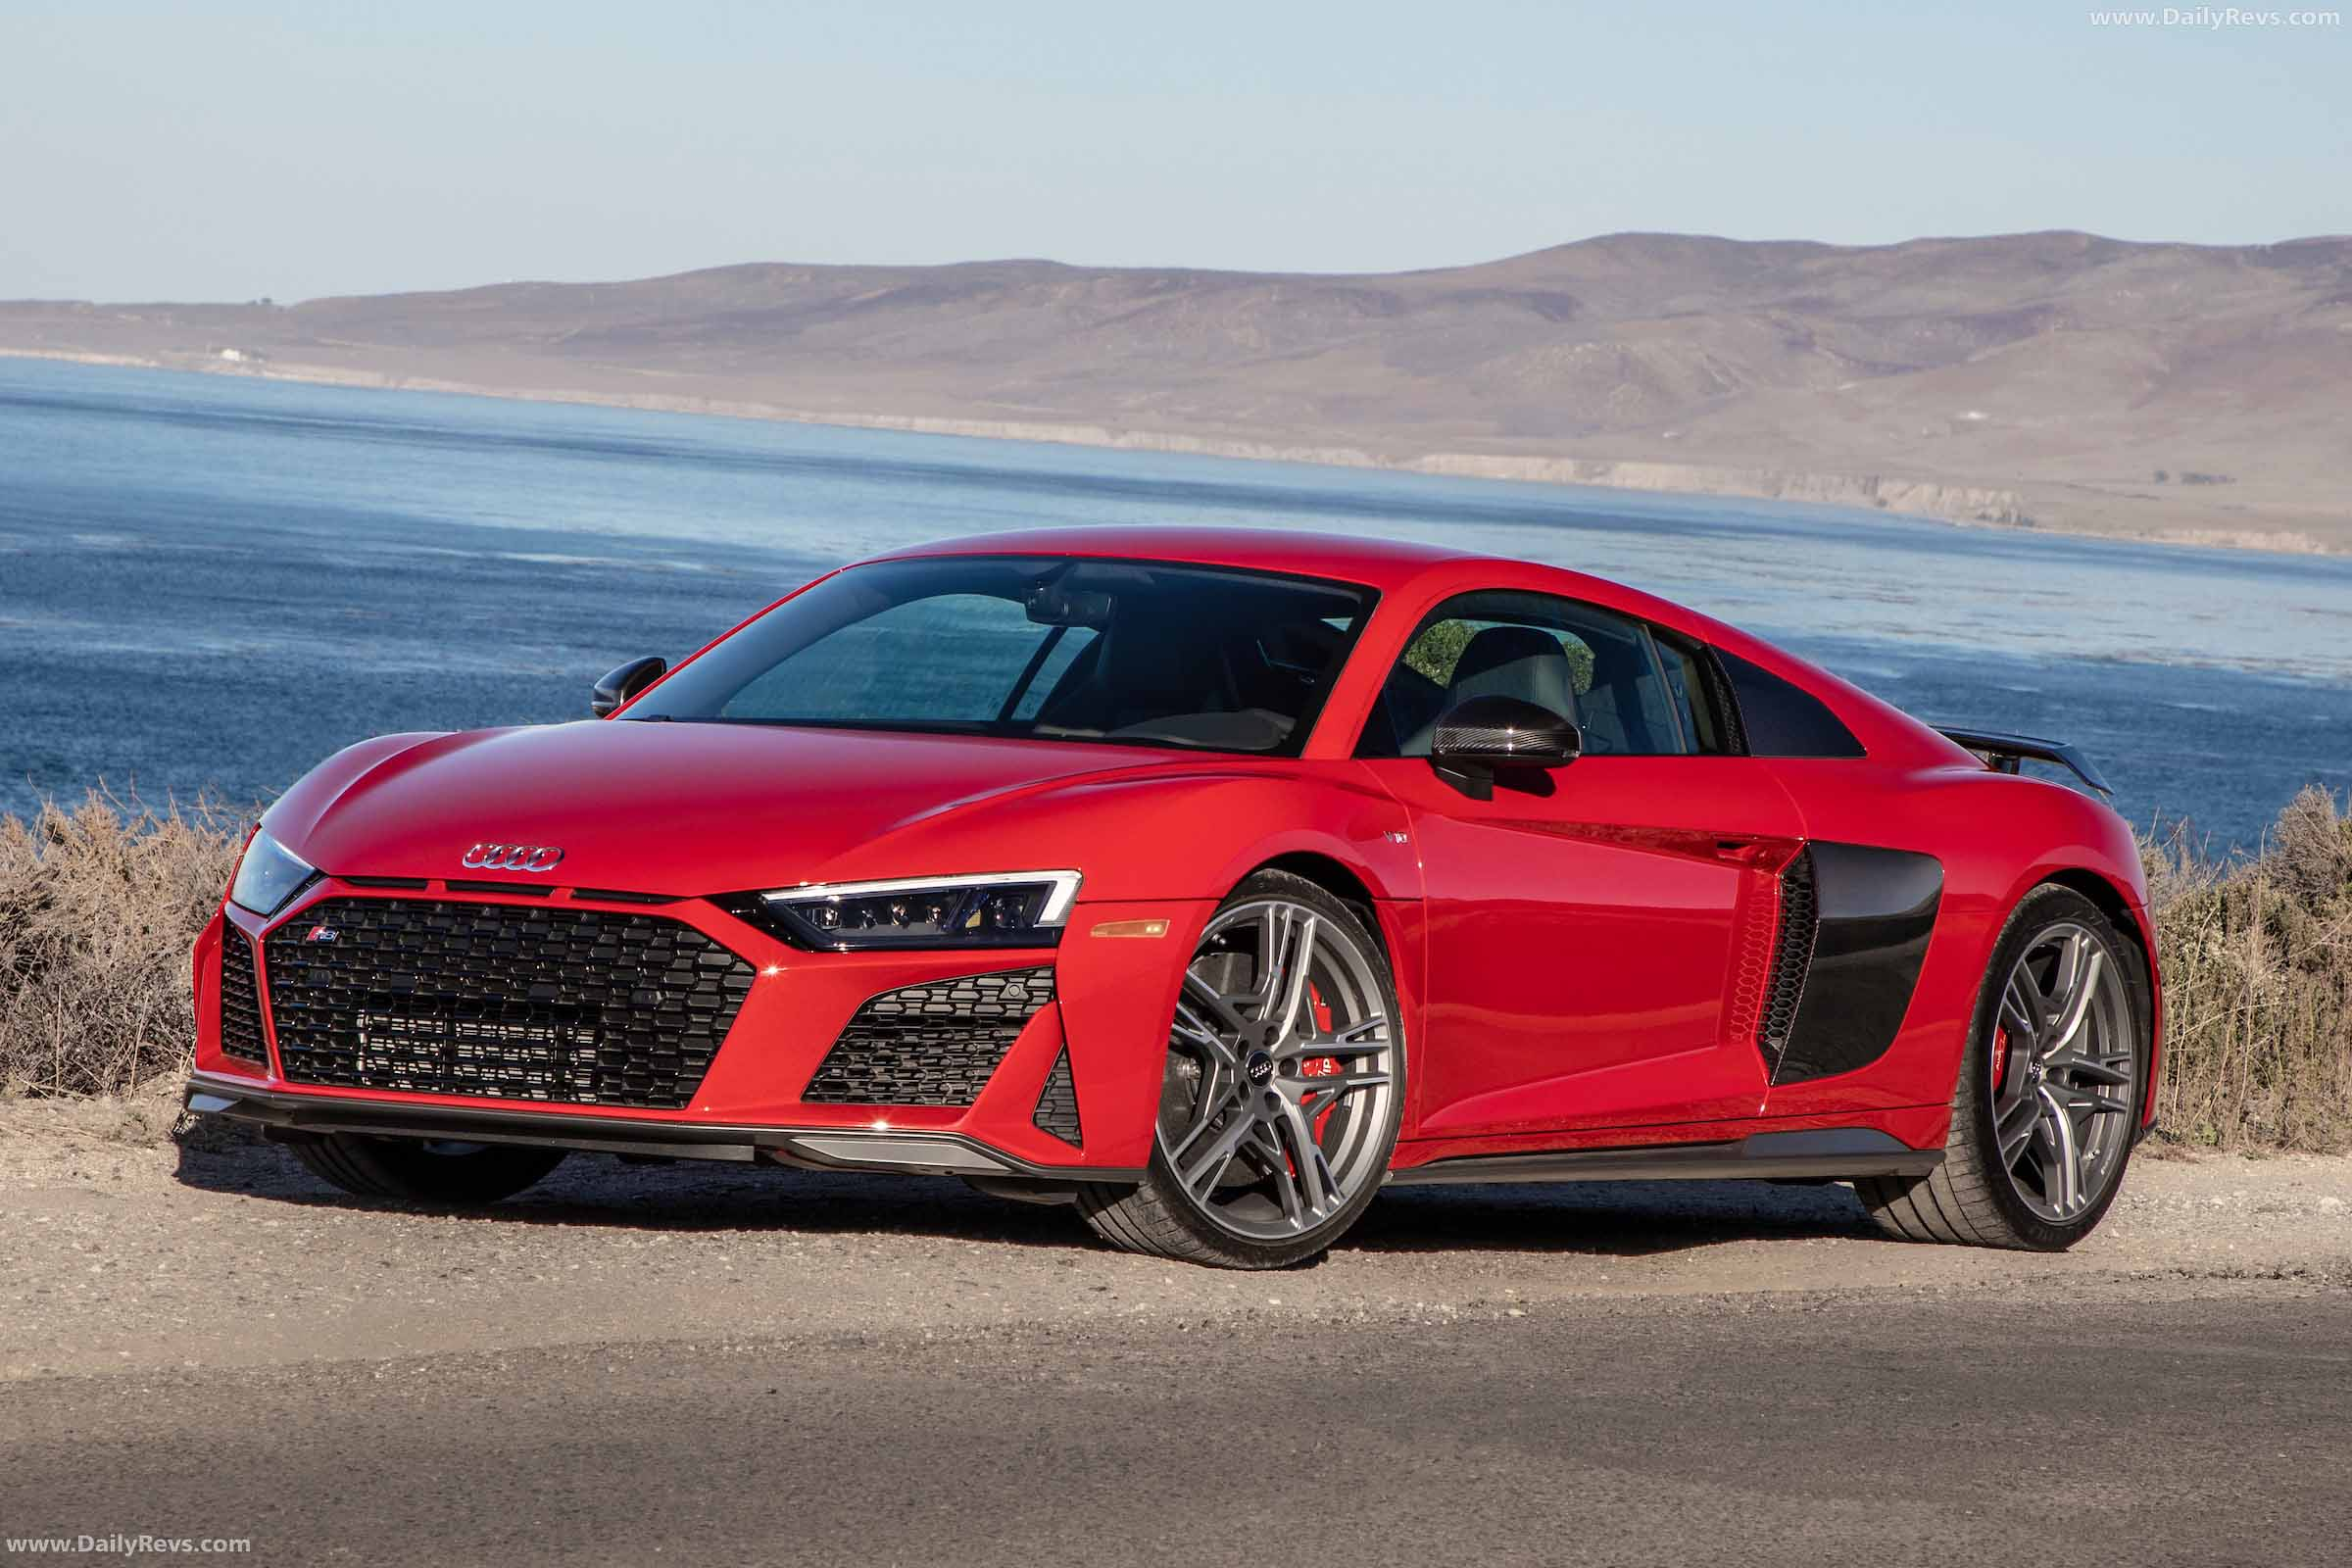 2020 Audi R8 Coupe US - HD Pictures, Videos, Specs ...